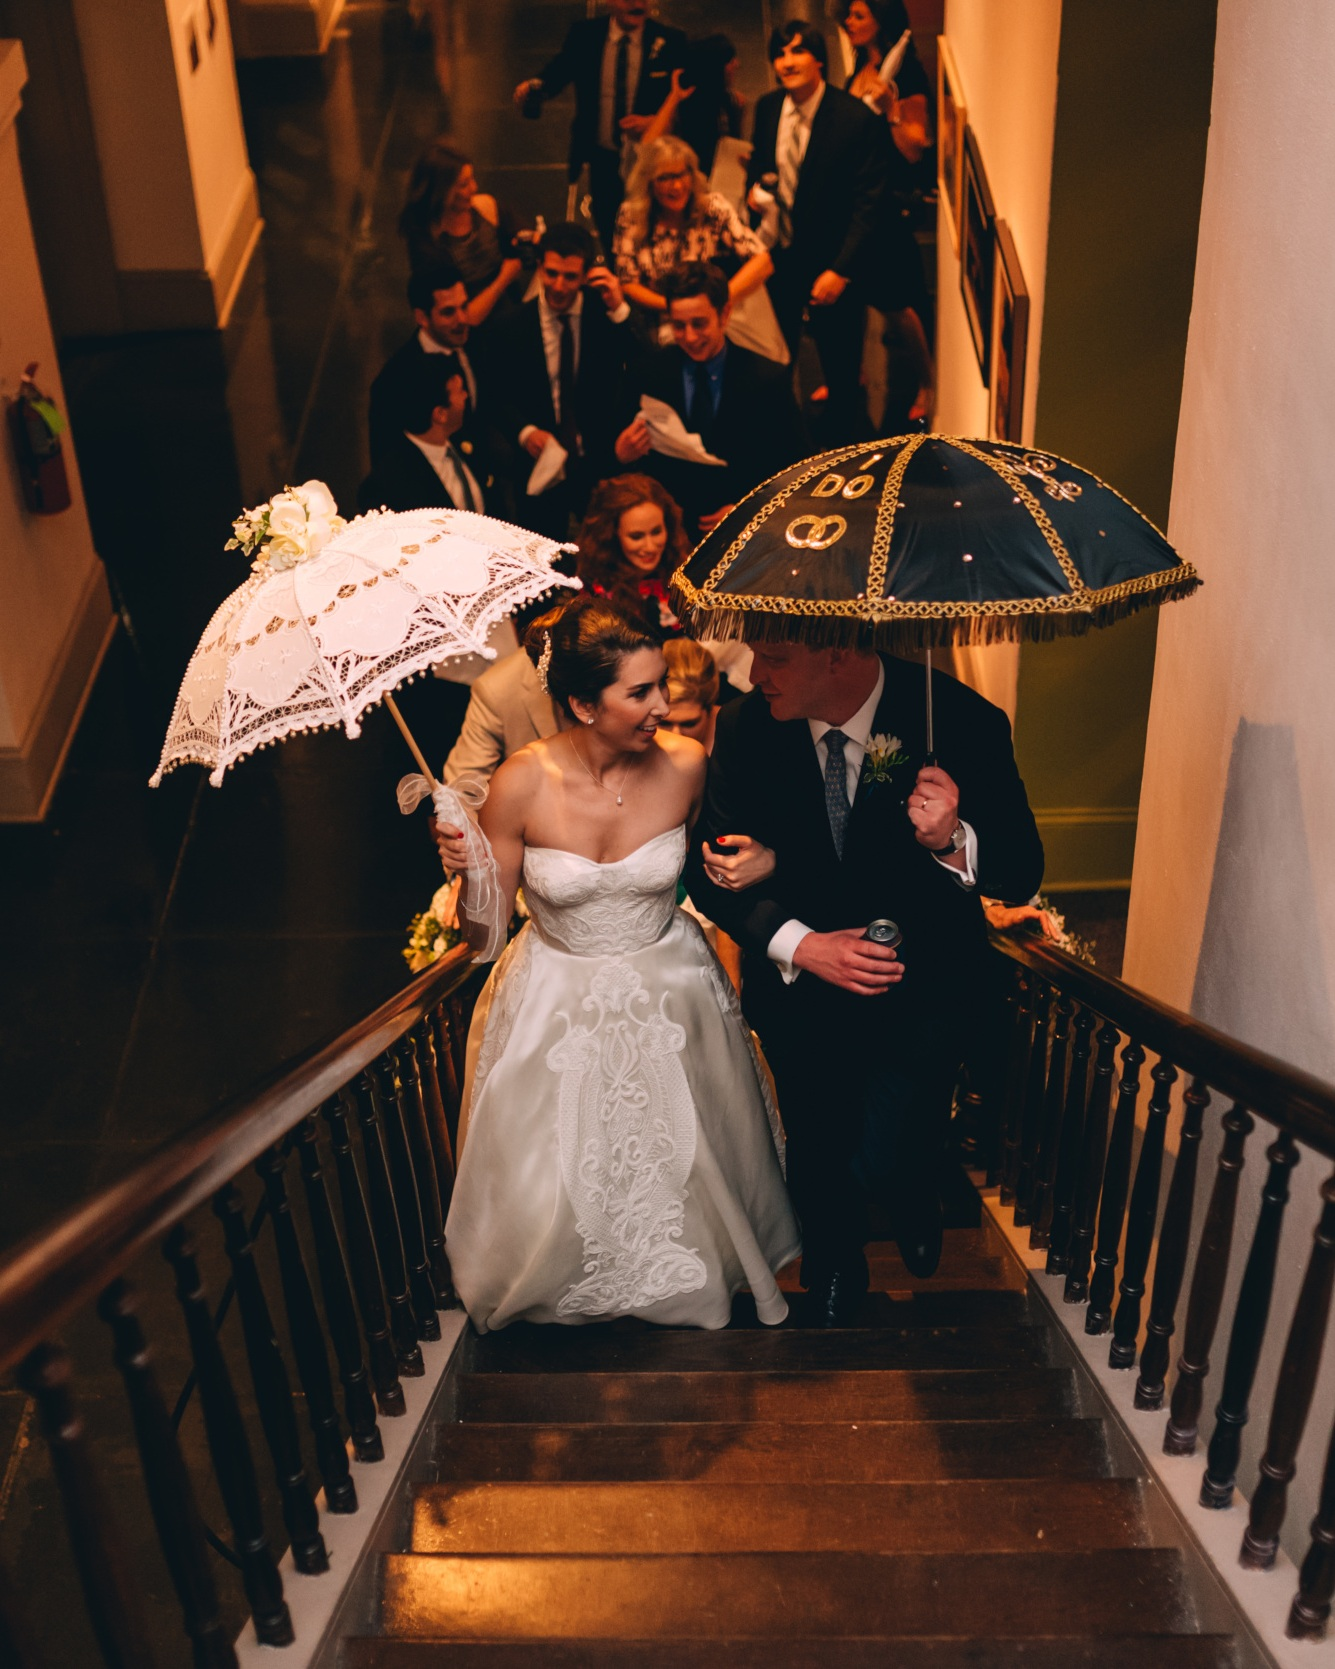 event+planning+companies+new+orleans%2C+new+orleans+wedding+packages.jpg